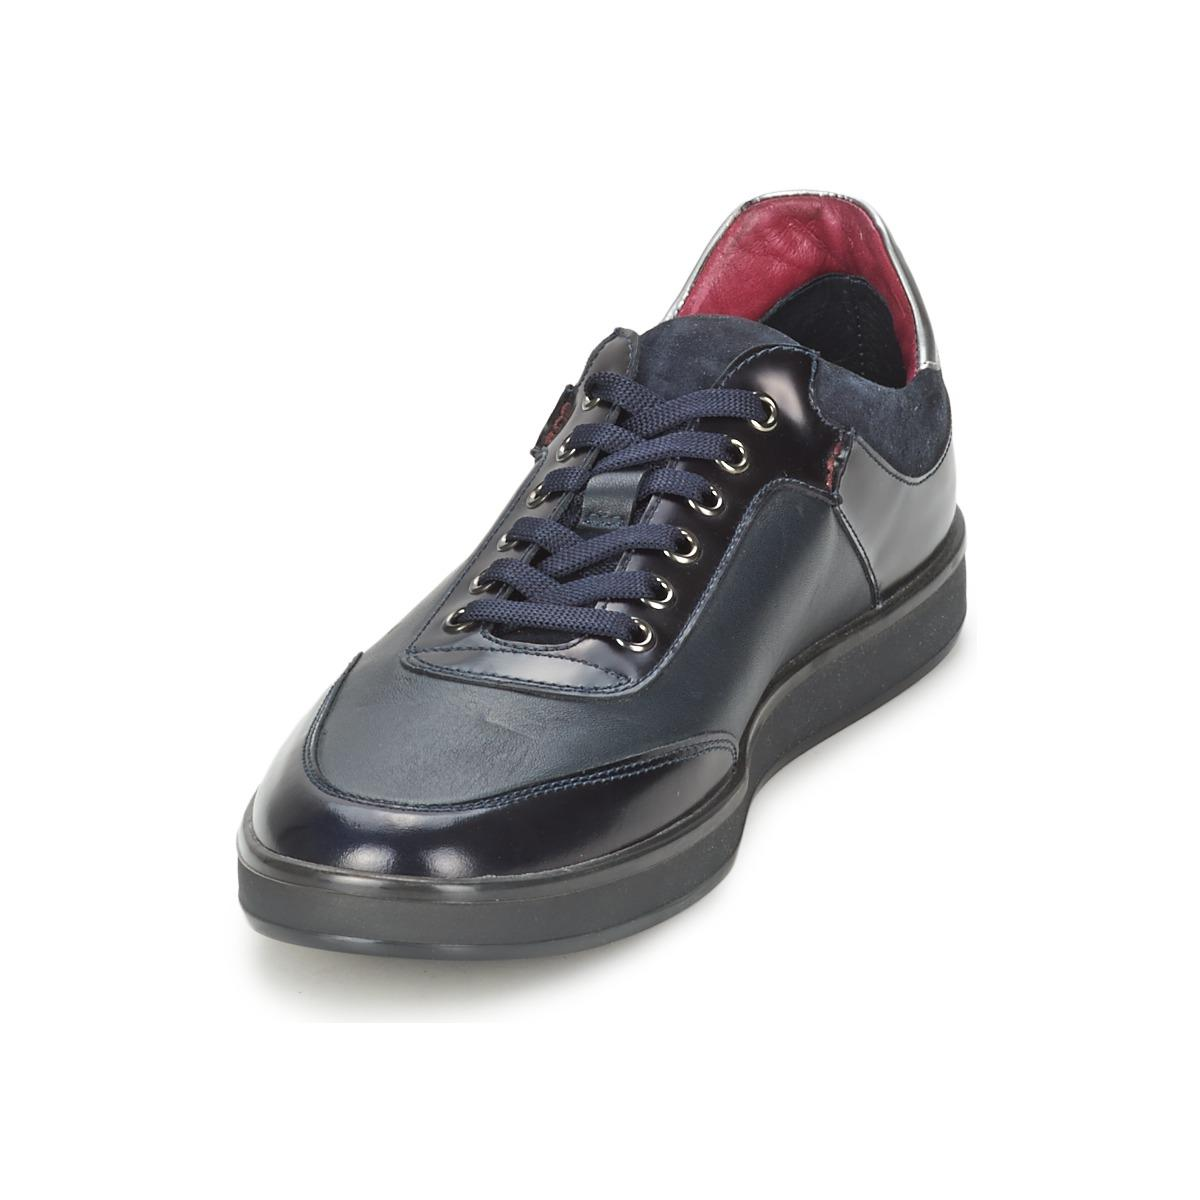 Bikkembergs Leather Olimpian 97 L Shoes (trainers) in Blue for Men